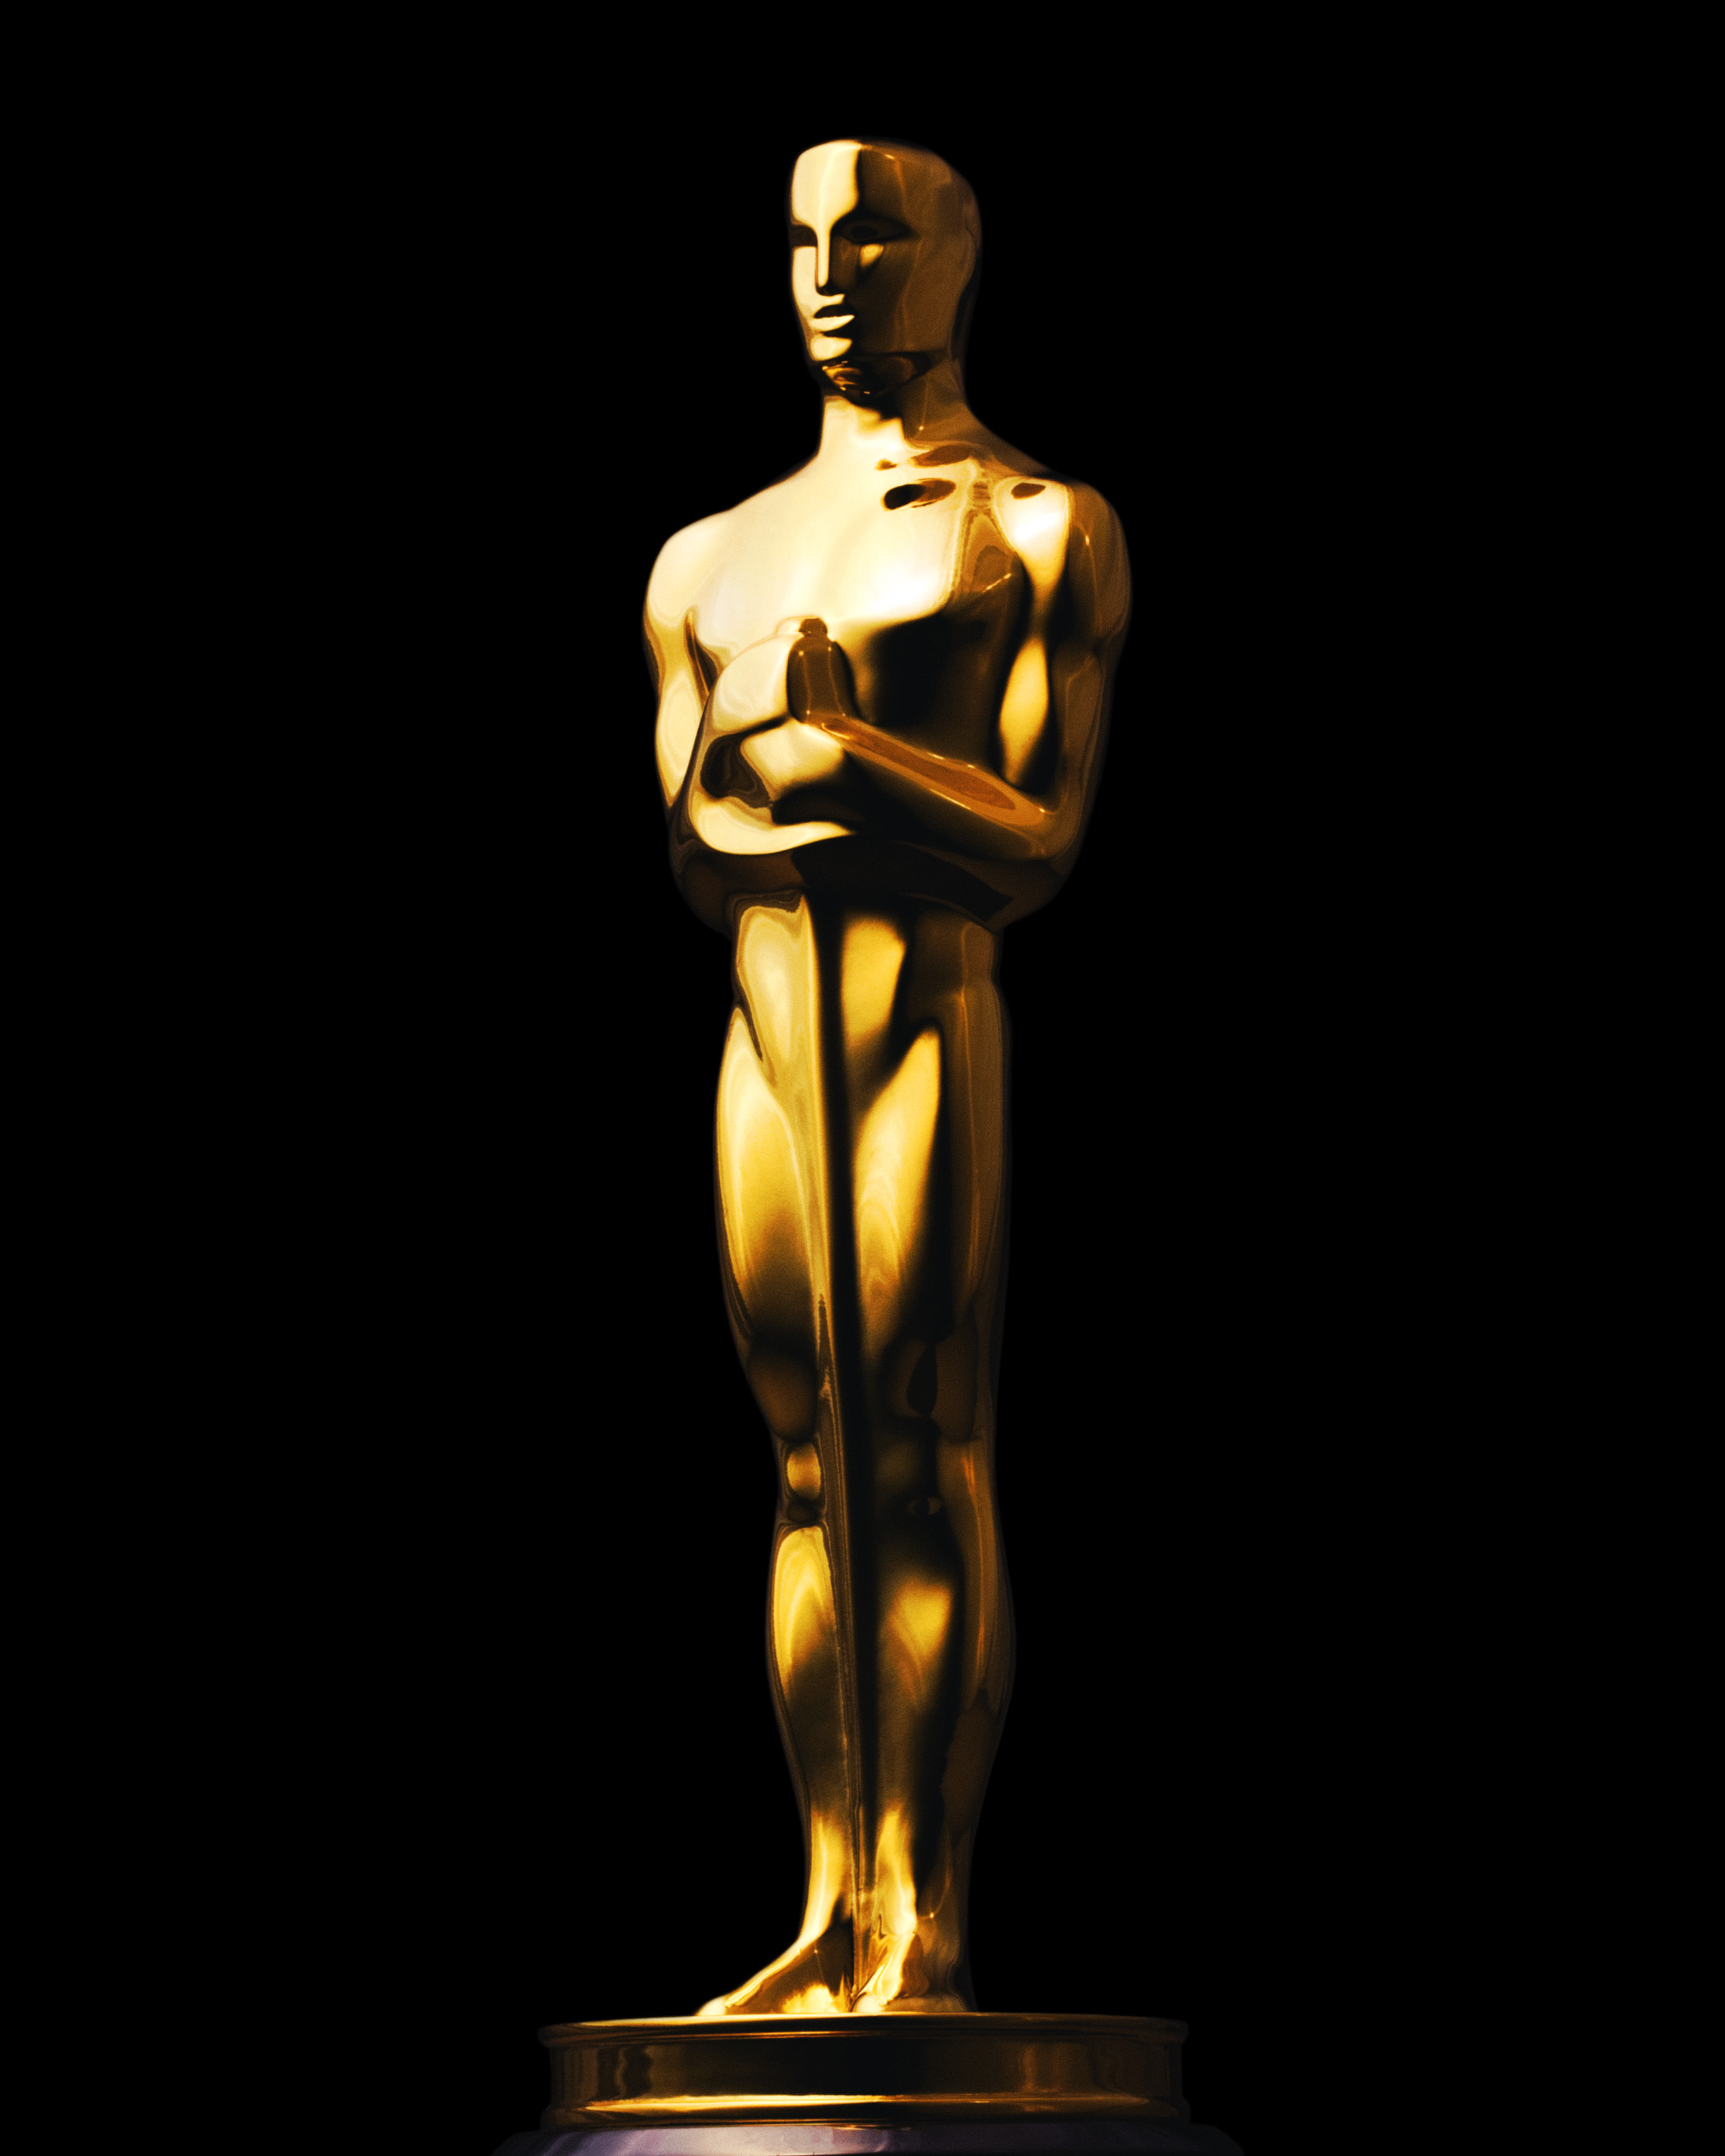 Bing Animated Wallpaper Academy Awards Live Broadcast 2016 Oscar Party